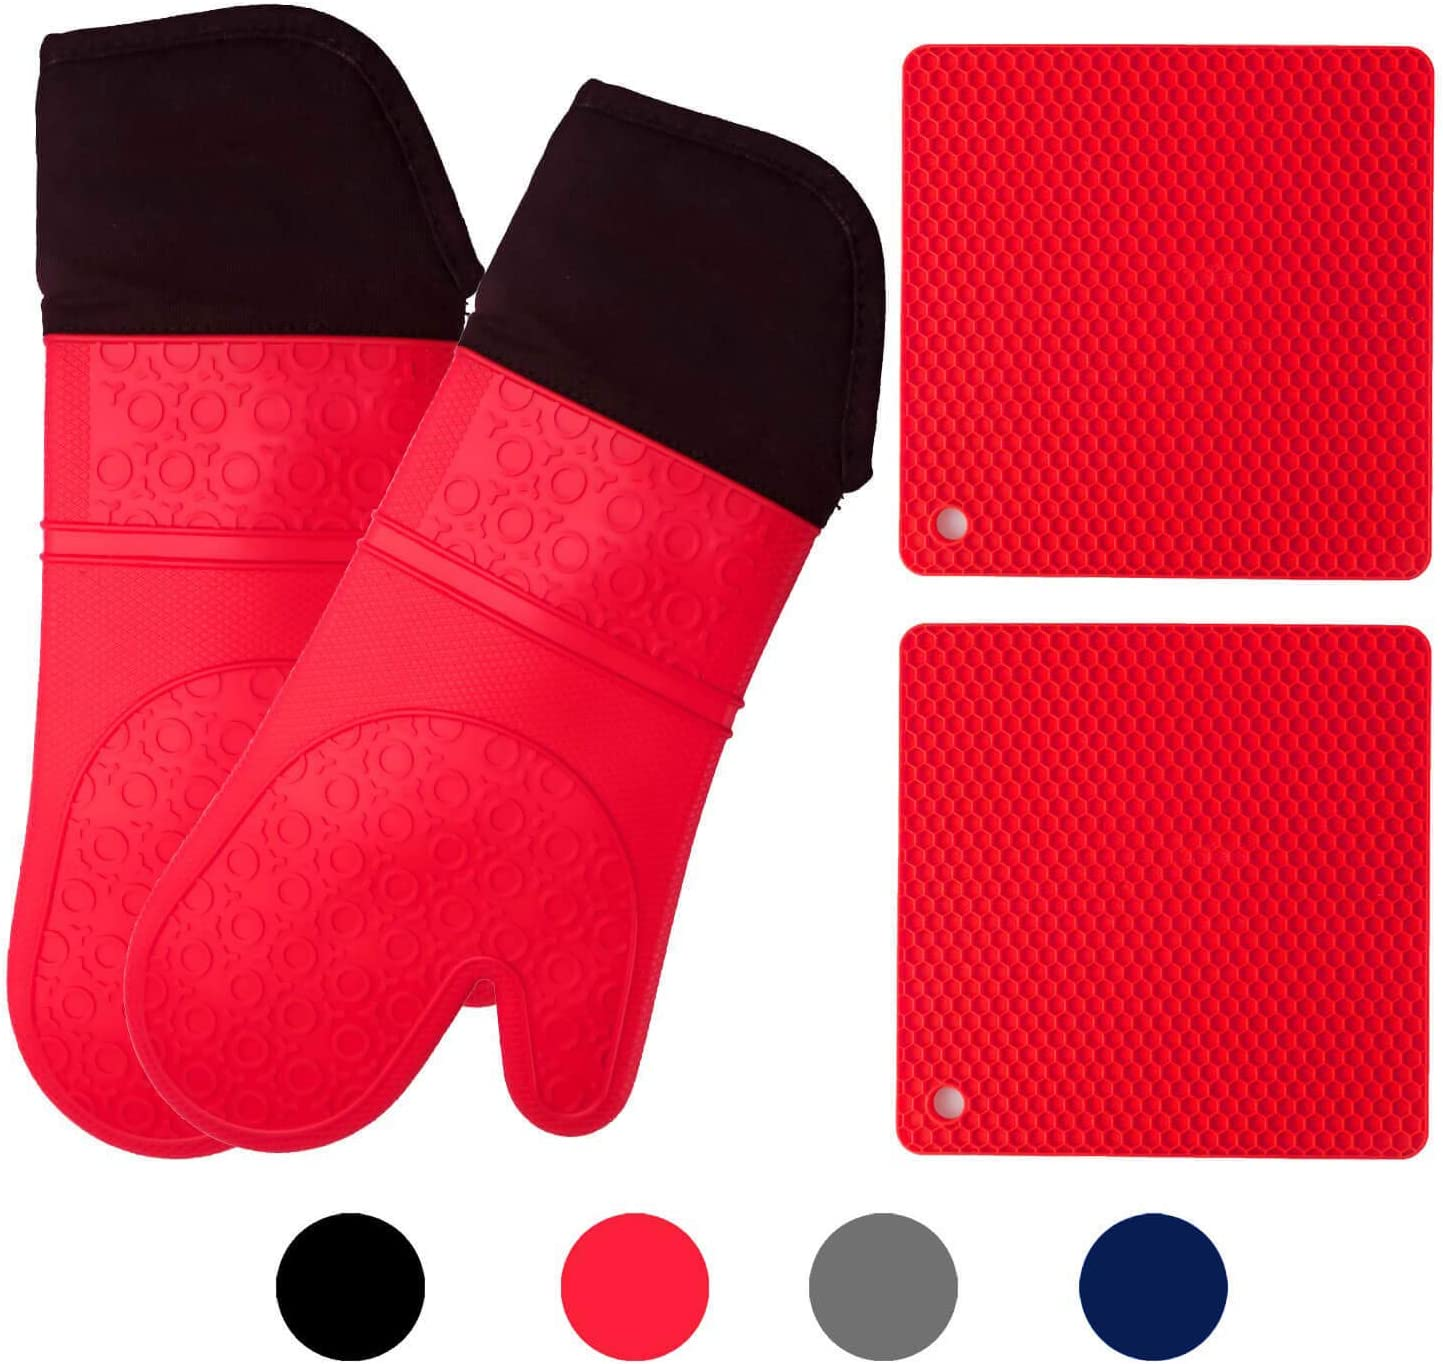 HOMWE Silicone Oven Mitts and Potholders (4-Piece Sets) Heavy Duty Cooking Gloves, Kitchen Counter Safe Trivet Mats   Advanced Heat Resistant, Non-Slip Textured Grip Pot Holders(Red)